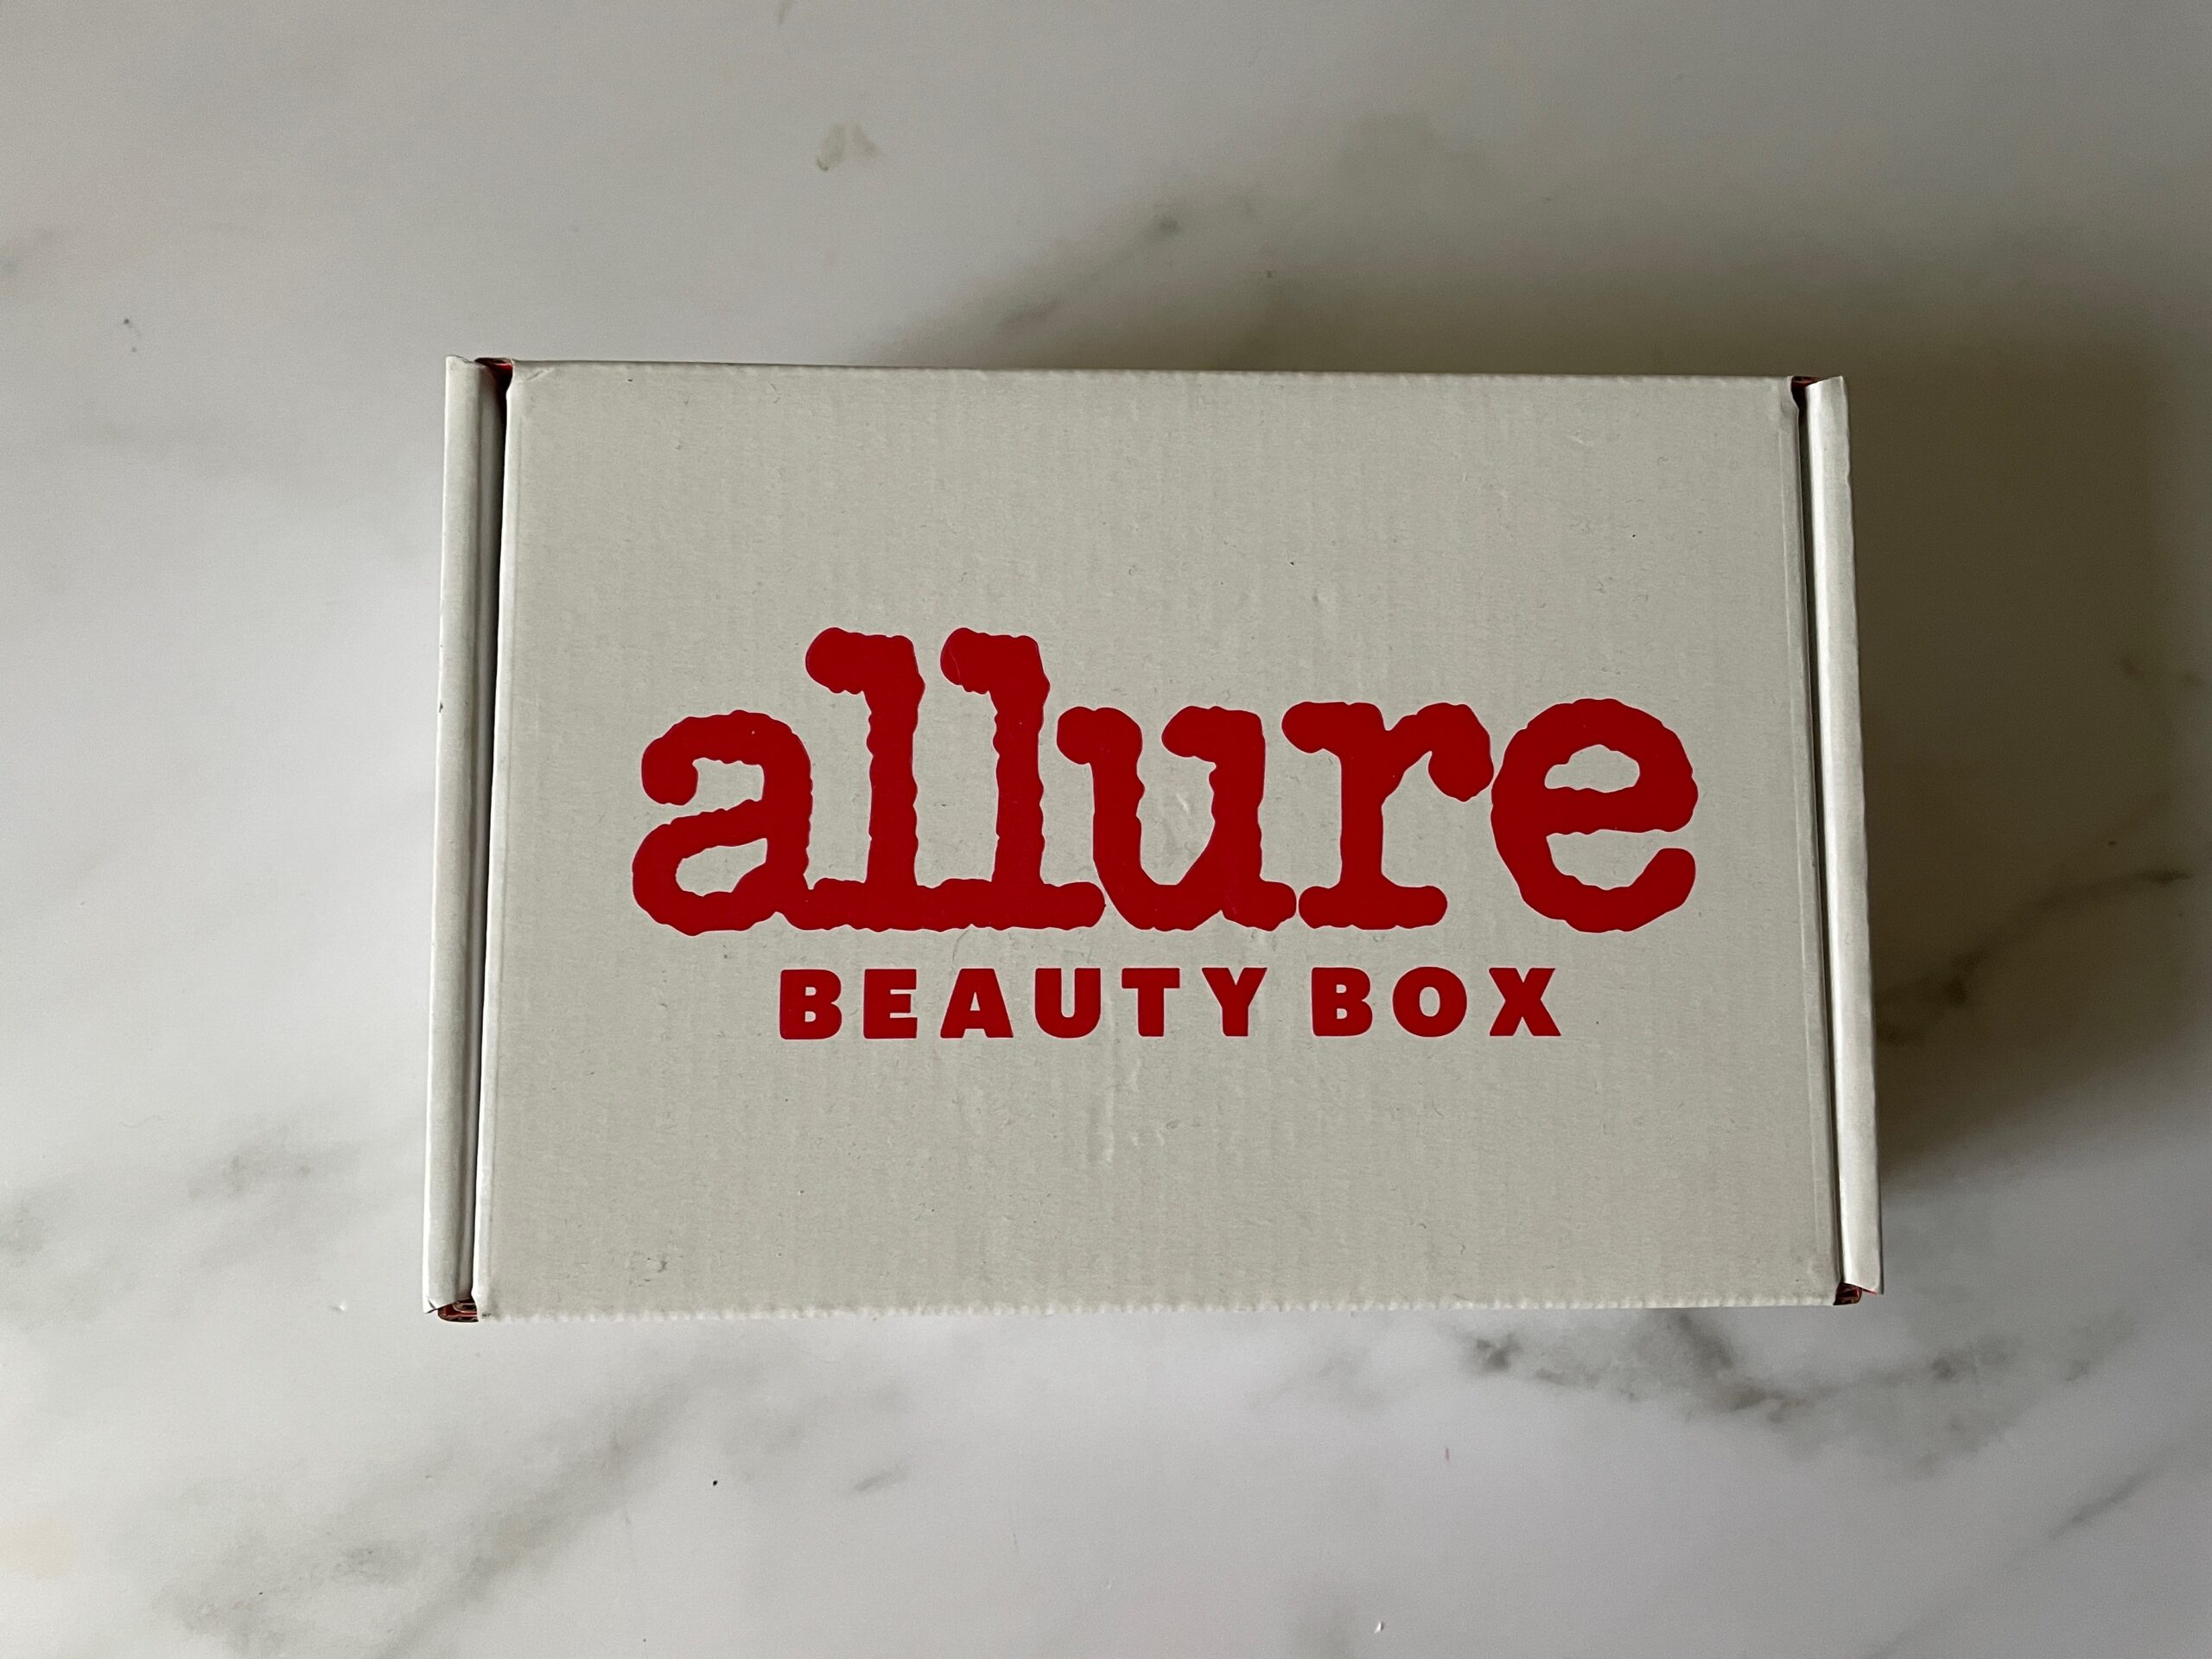 allure beauty box reviews